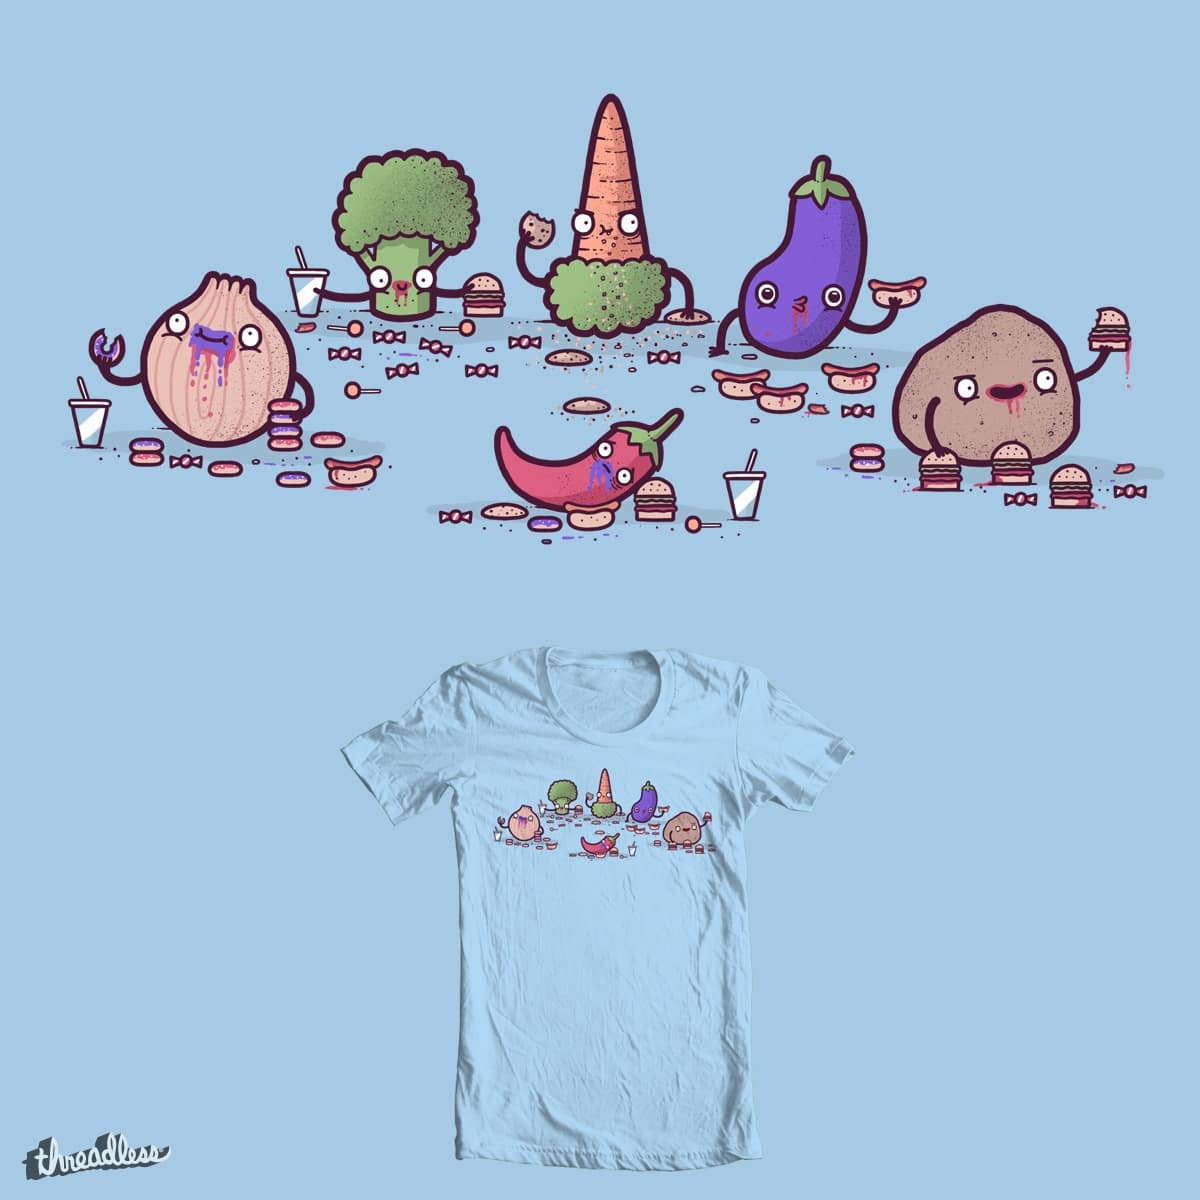 Unhealthy food by randyotter3000 and davidfromdallas on Threadless